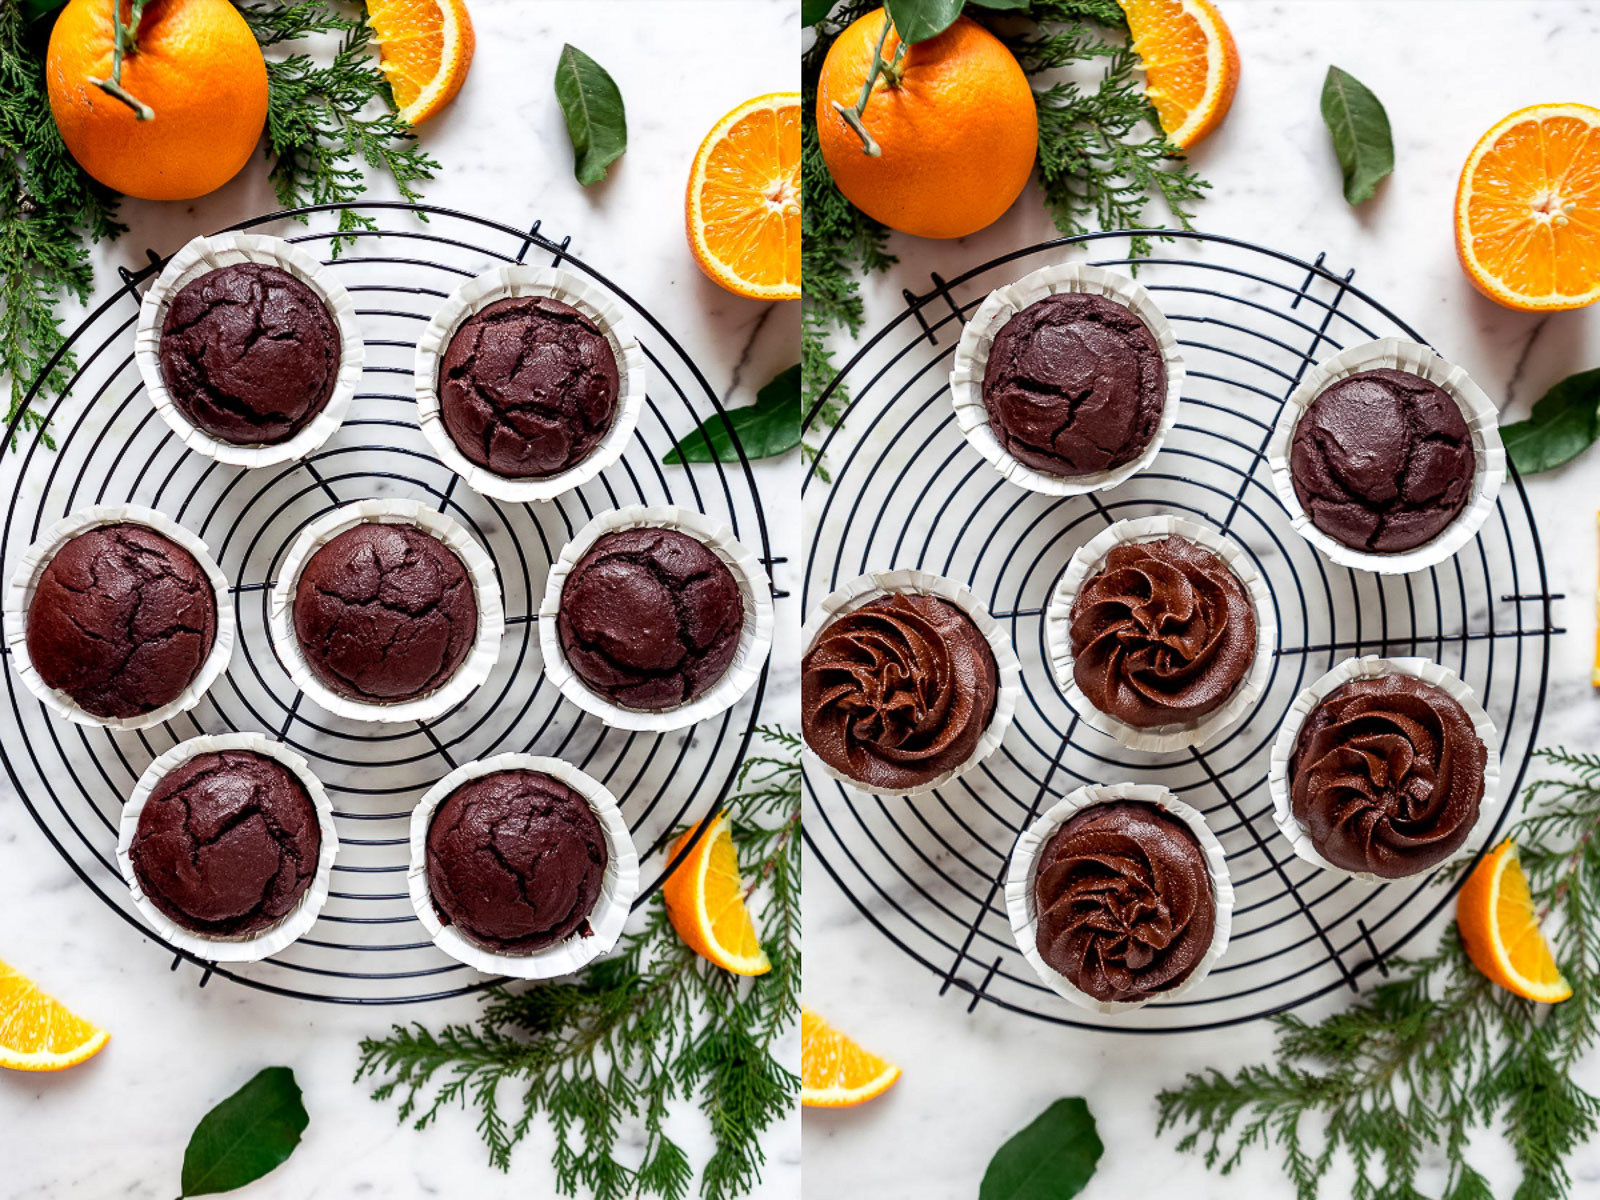 healthy vegan CHOCOLATE PUMPKIN CUPCAKES with orange and DATE CHOCOLATE Frosting CUPCAKES VEGAN al CIOCCOLATO ARANCIA e ZUCCA con mousse al cioccolato datteri e zucca senza zucchero